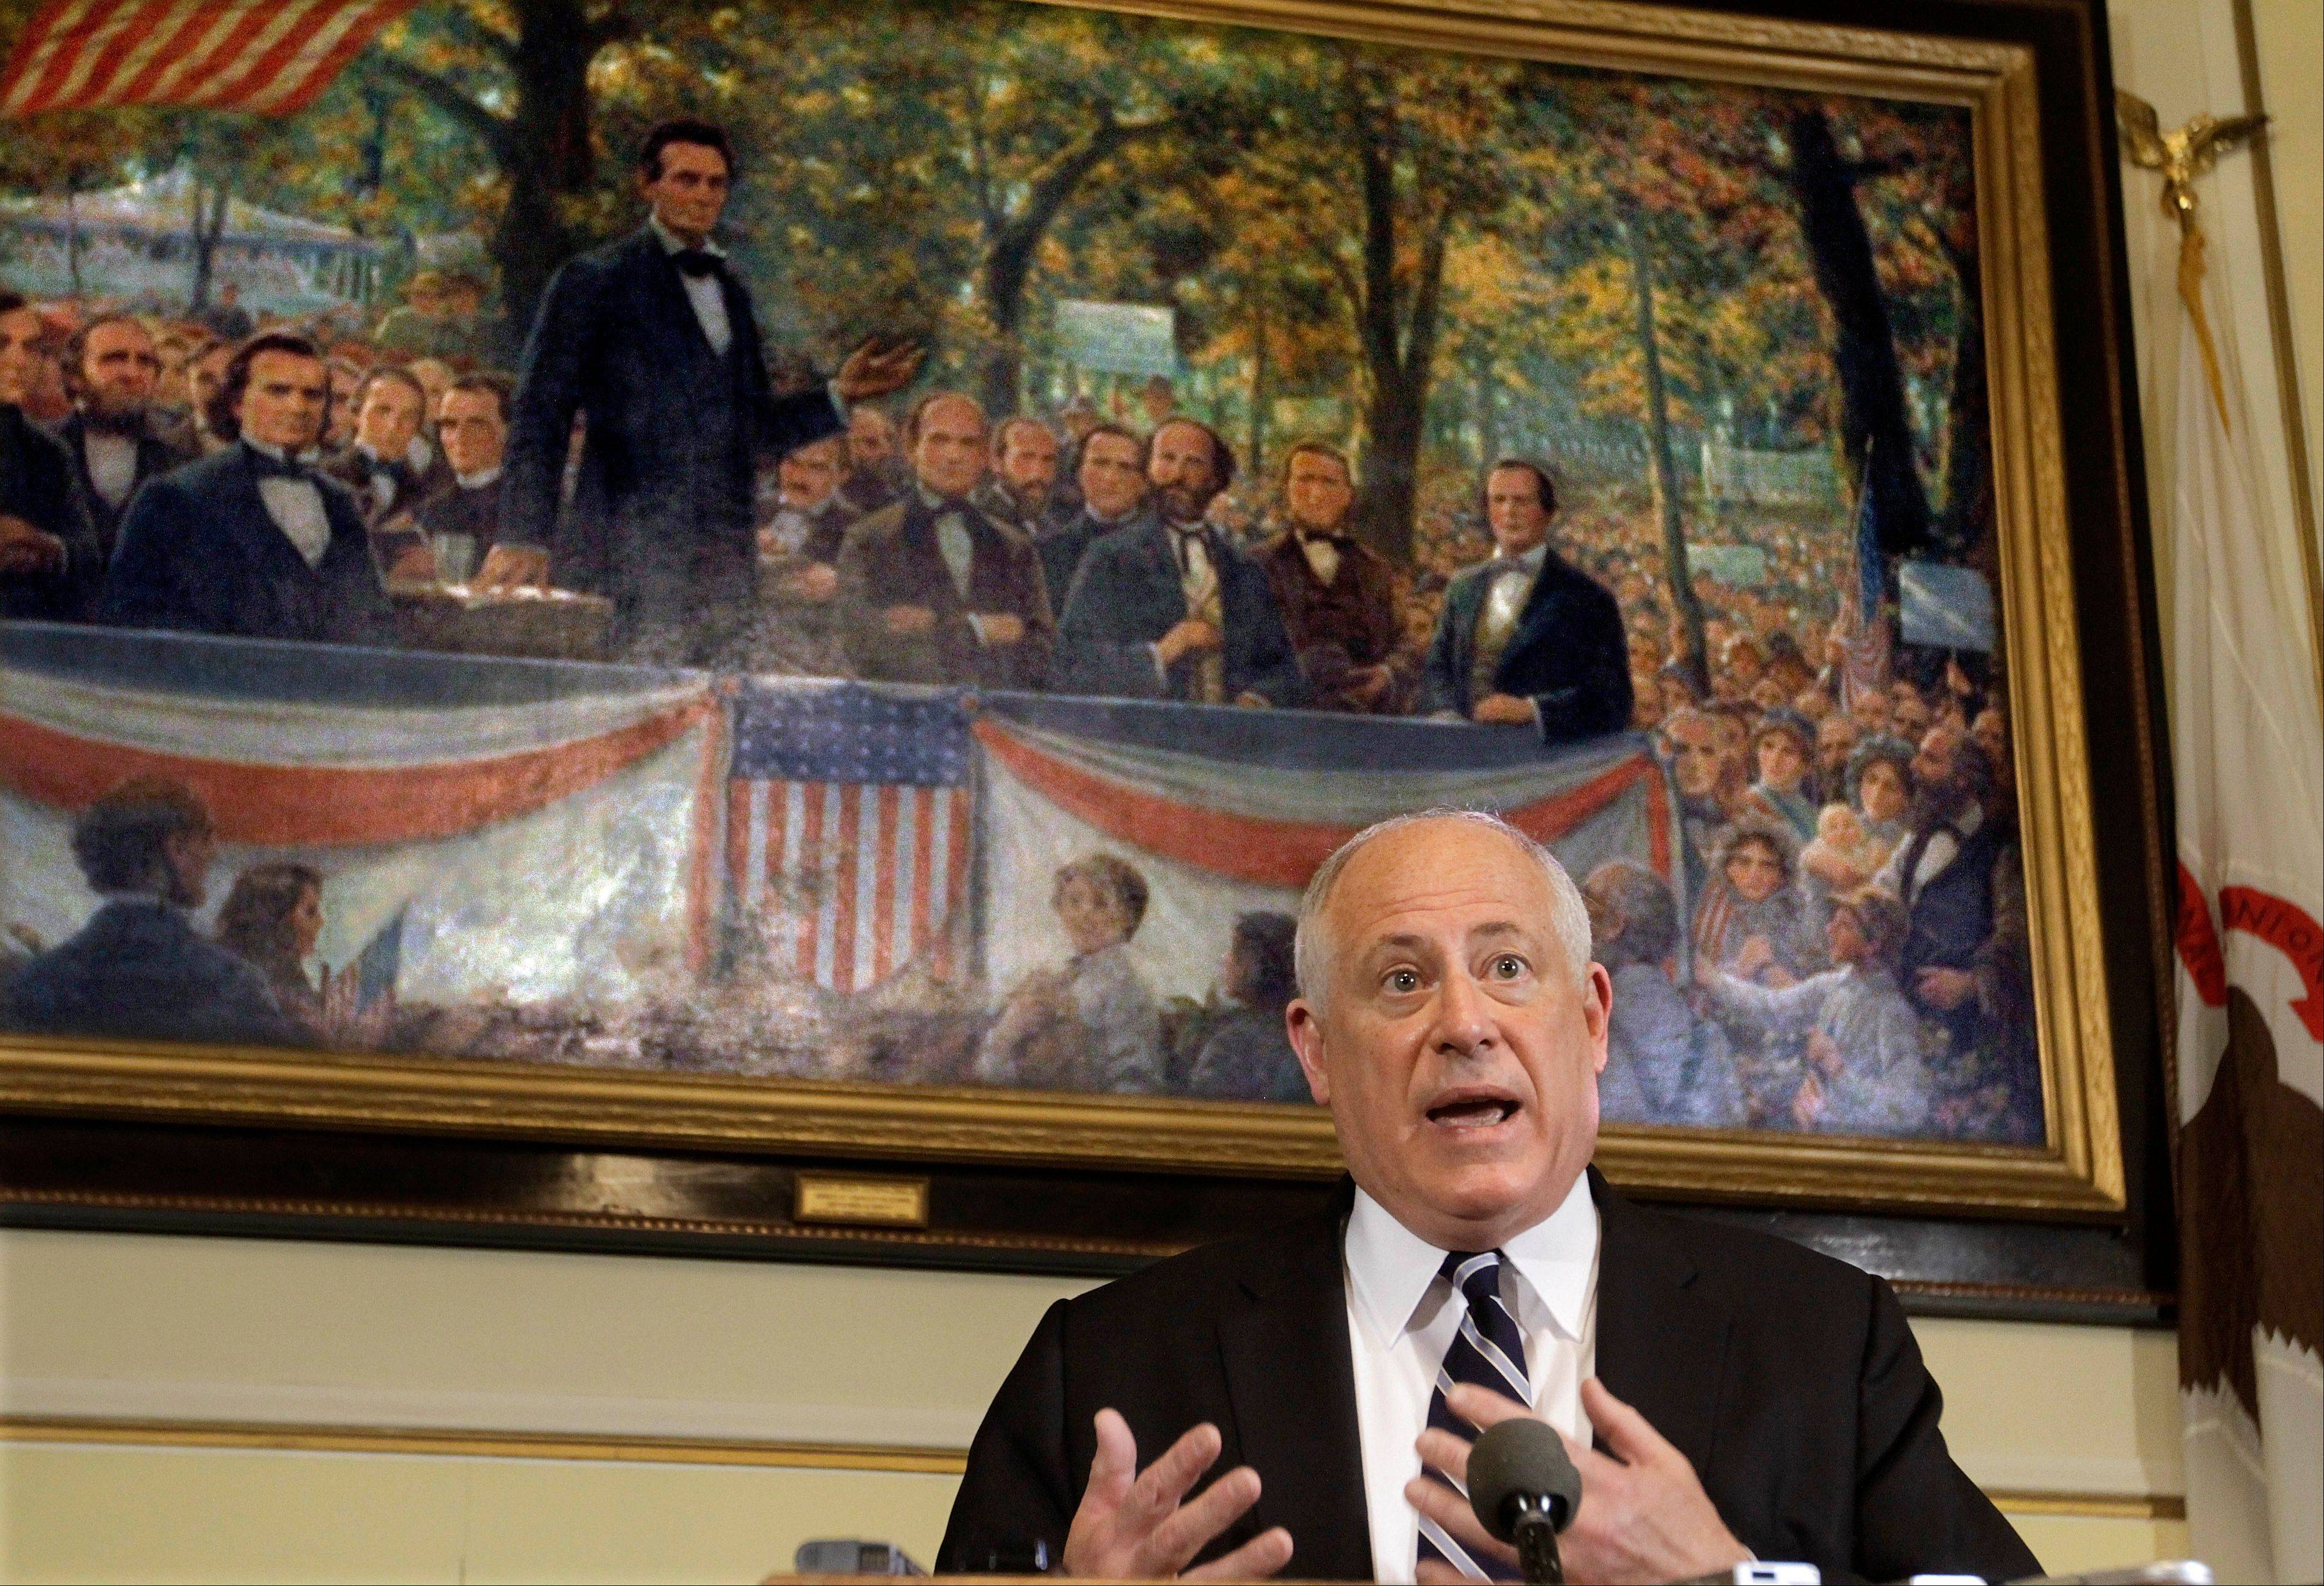 Illinois Gov. Pat Quinn speaks with reporters in his office at the Illinois State Capitol Friday, June 1, 2012 in Springfield, Ill. Quinn responds to lawmakers challenging him once again with legislation that would expand gambling across the state, the failure to pass pension reforms and how lawmakers dealt with two measures affecting the state's overcrowded prisons.